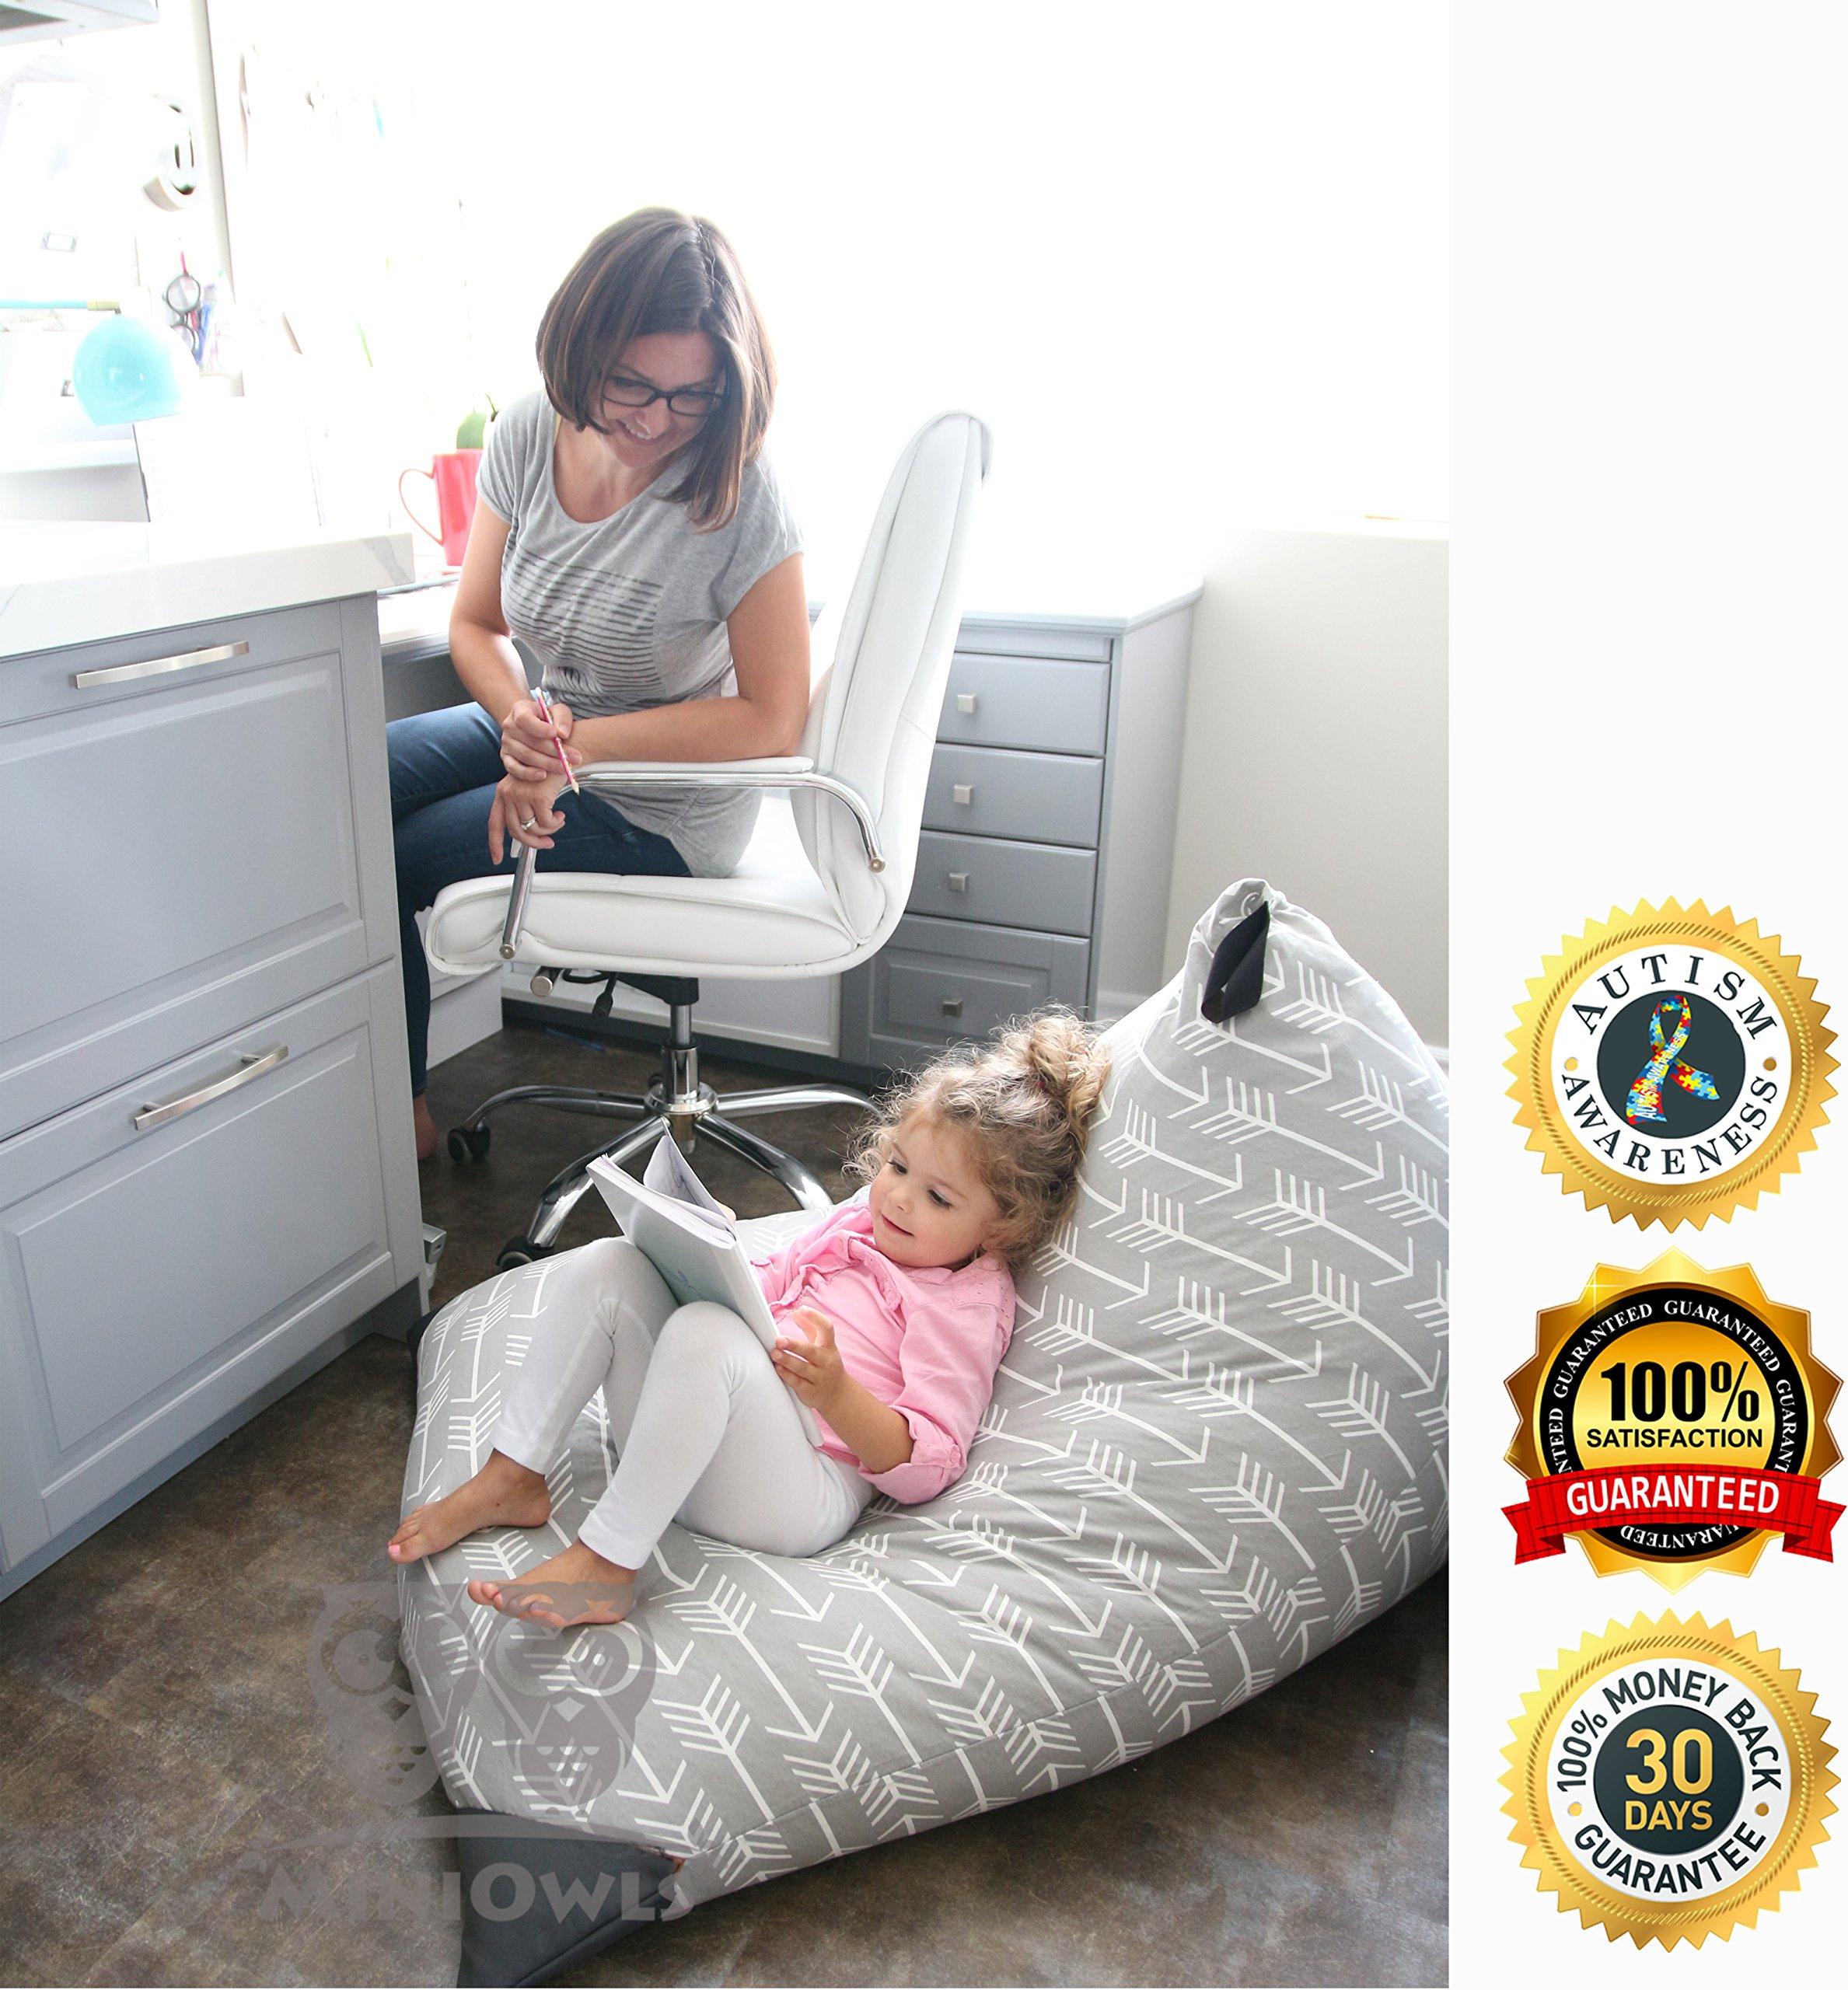 Best Rated Furniture On Amazon.com